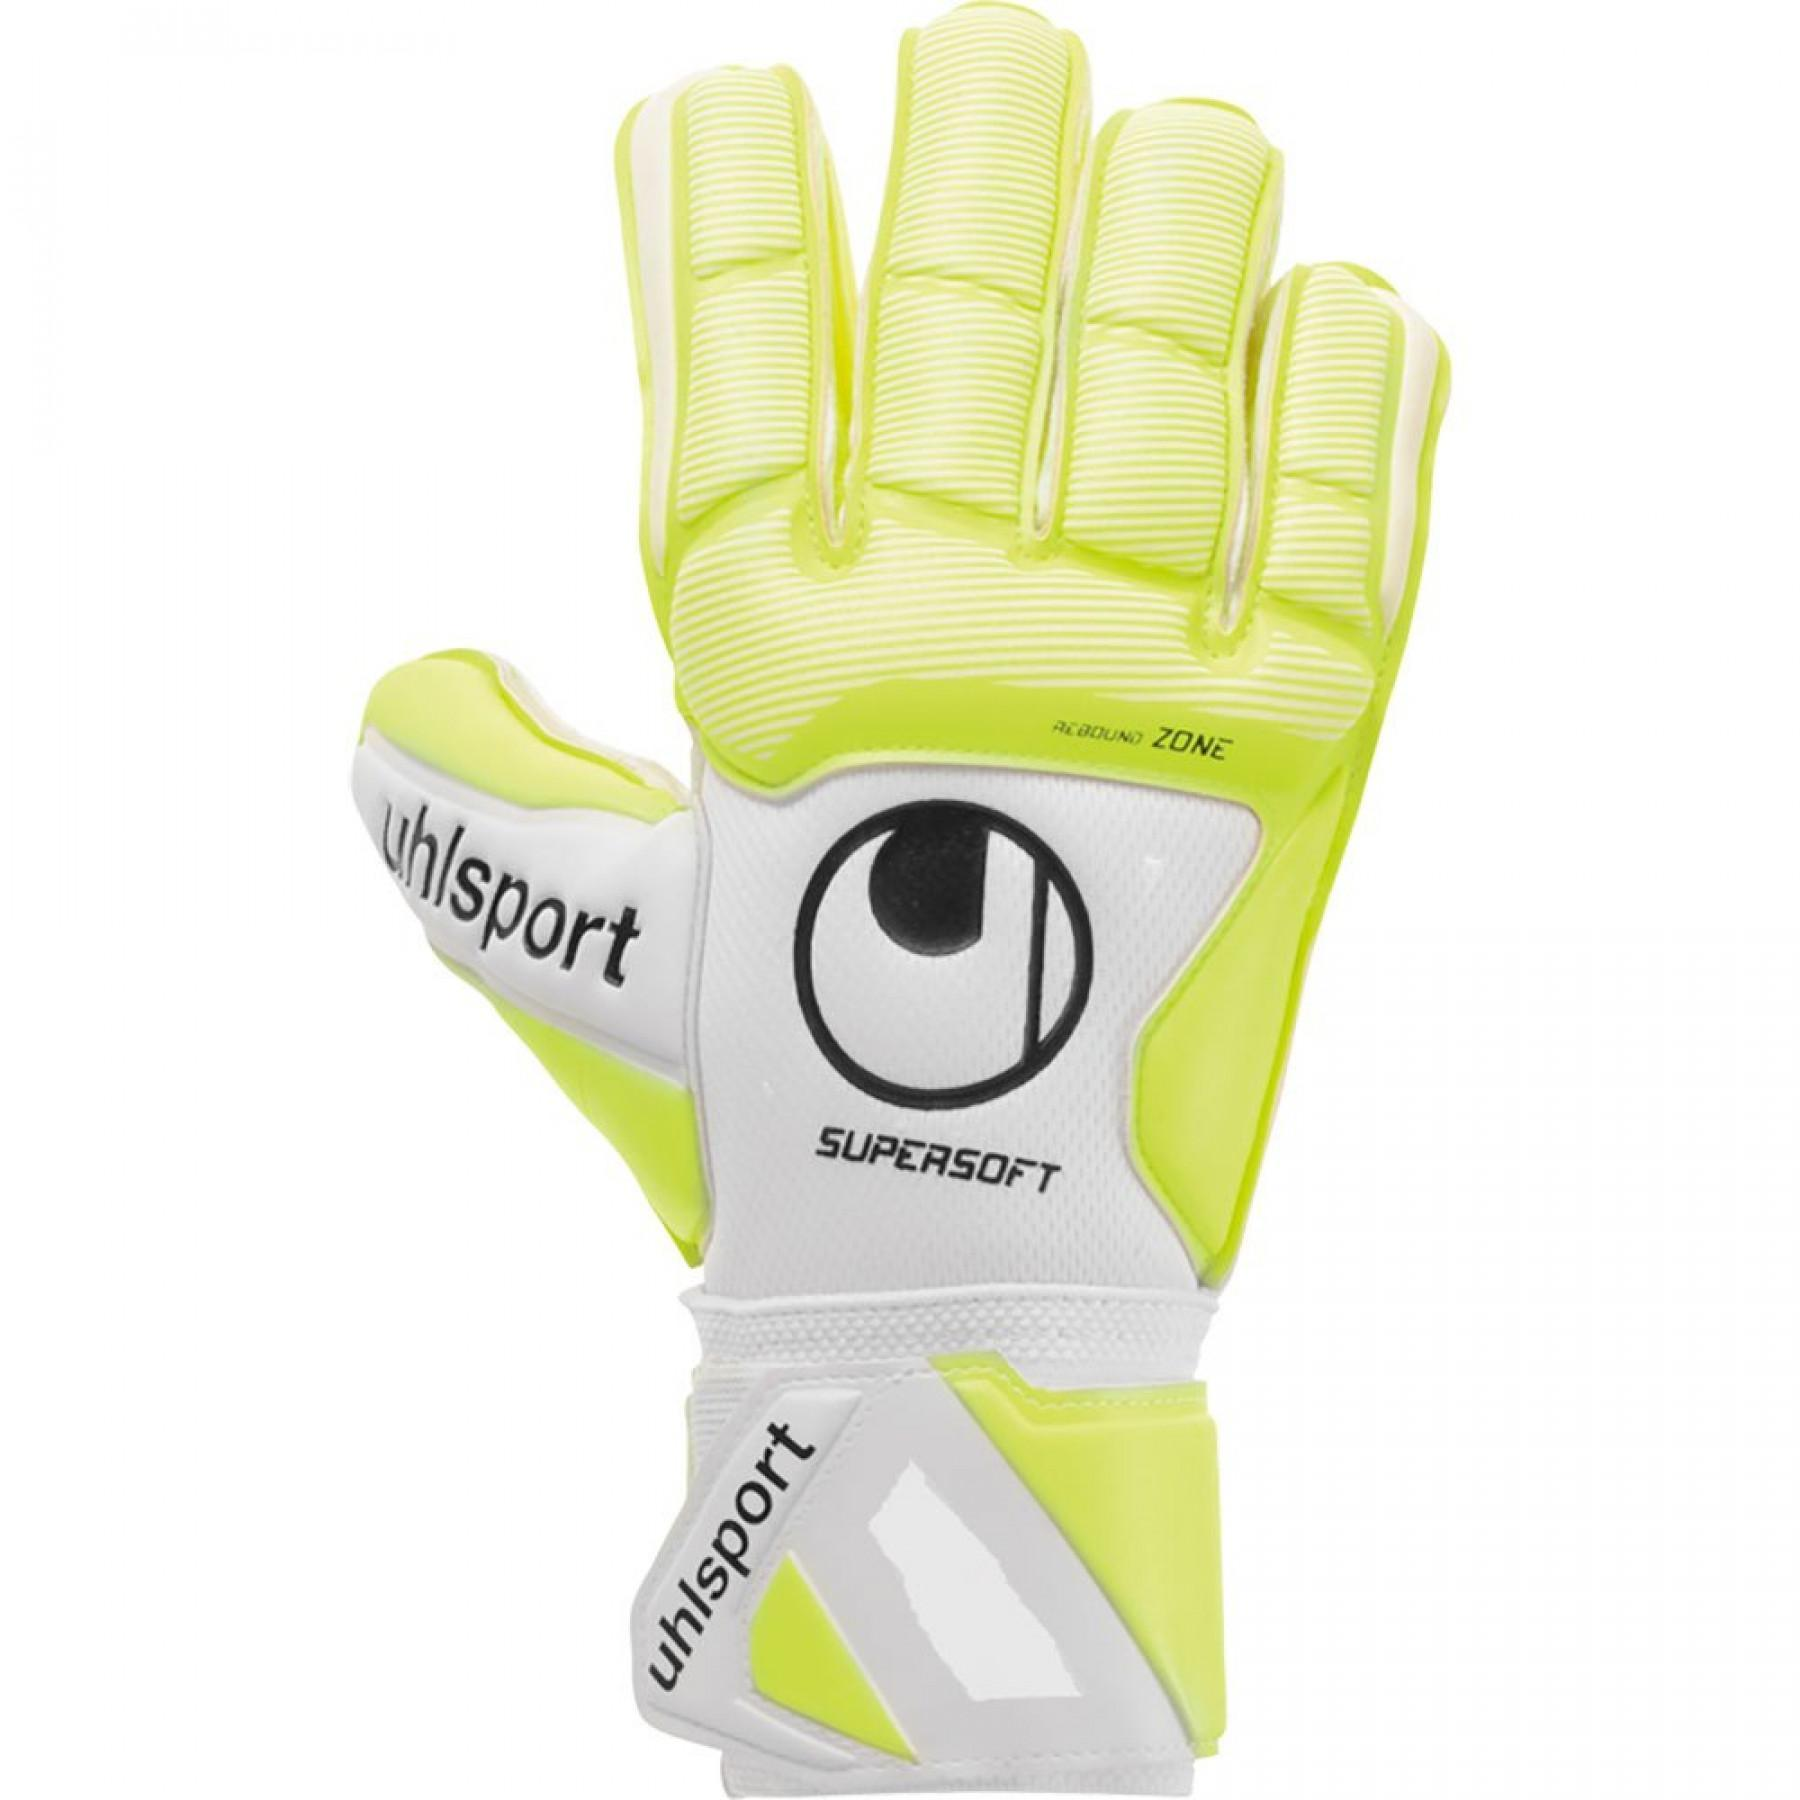 Gants Uhlsport Pure Alliance Supersoft